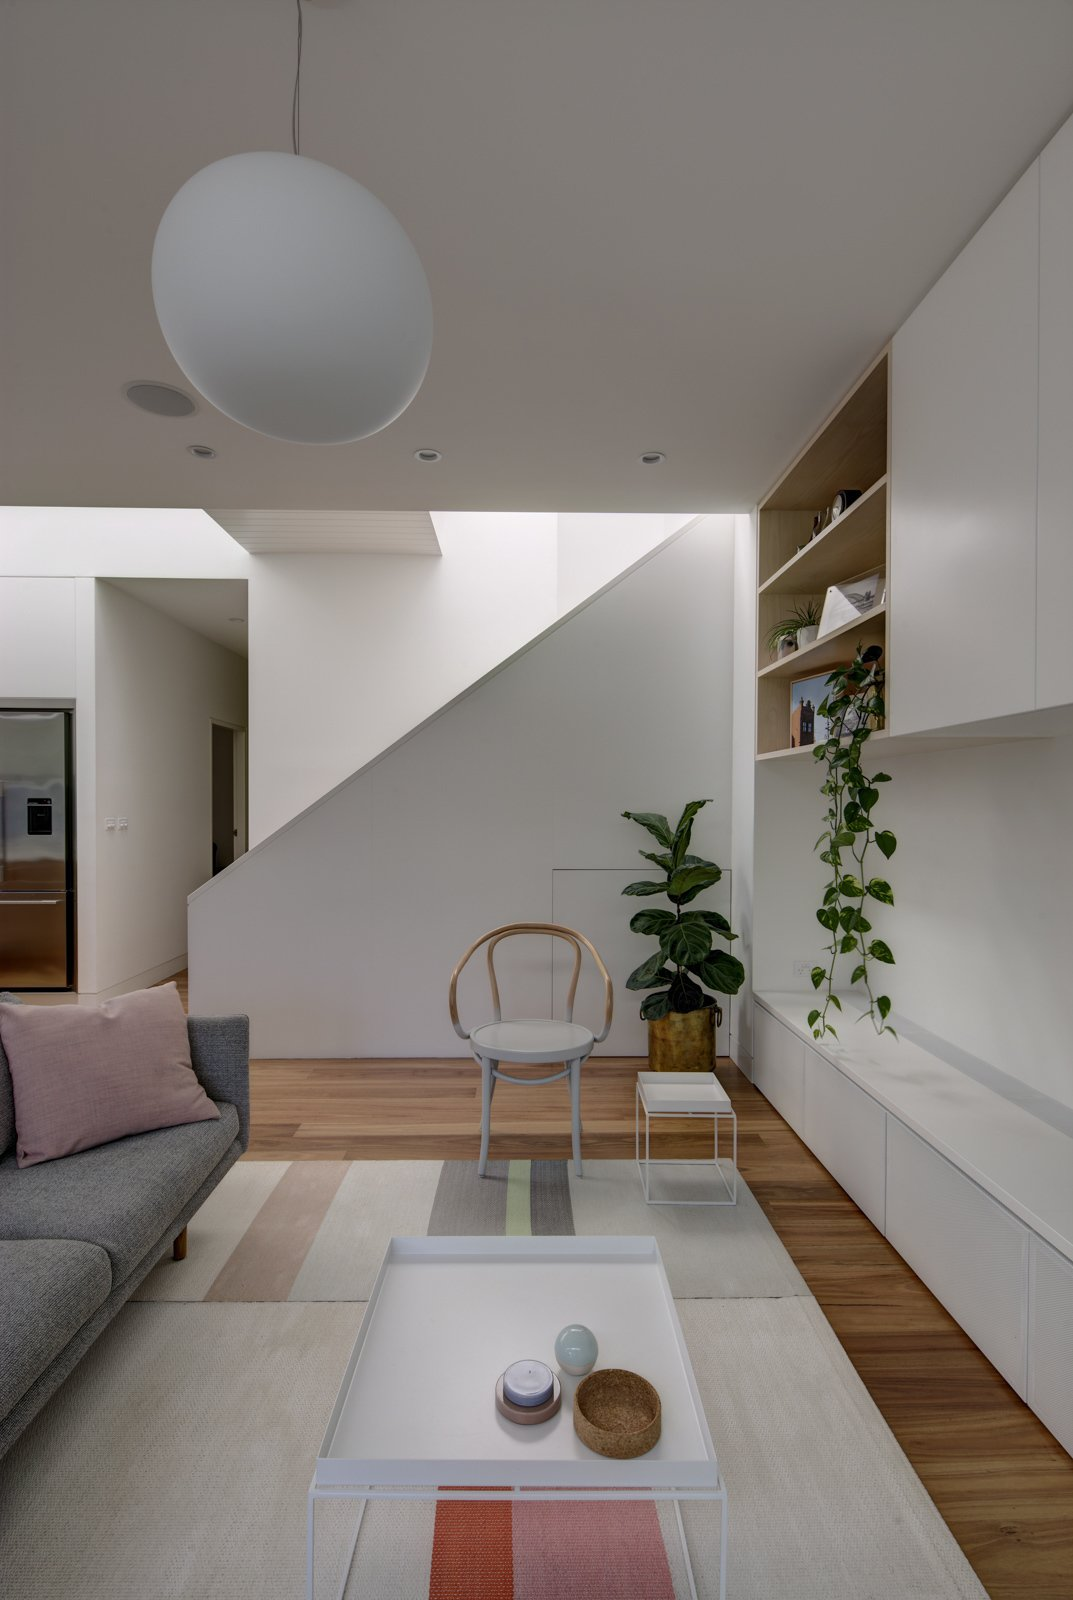 Living Room, Sofa, Chair, Coffee Tables, Bookcase, Ceiling Lighting, and Medium Hardwood Floor Colourful furnishings animate the space. Thonet armchair, Jardan Nook lounge and Hay side tables provide a comfortable, deliberately low key setting.  Best Photos from Inner West House